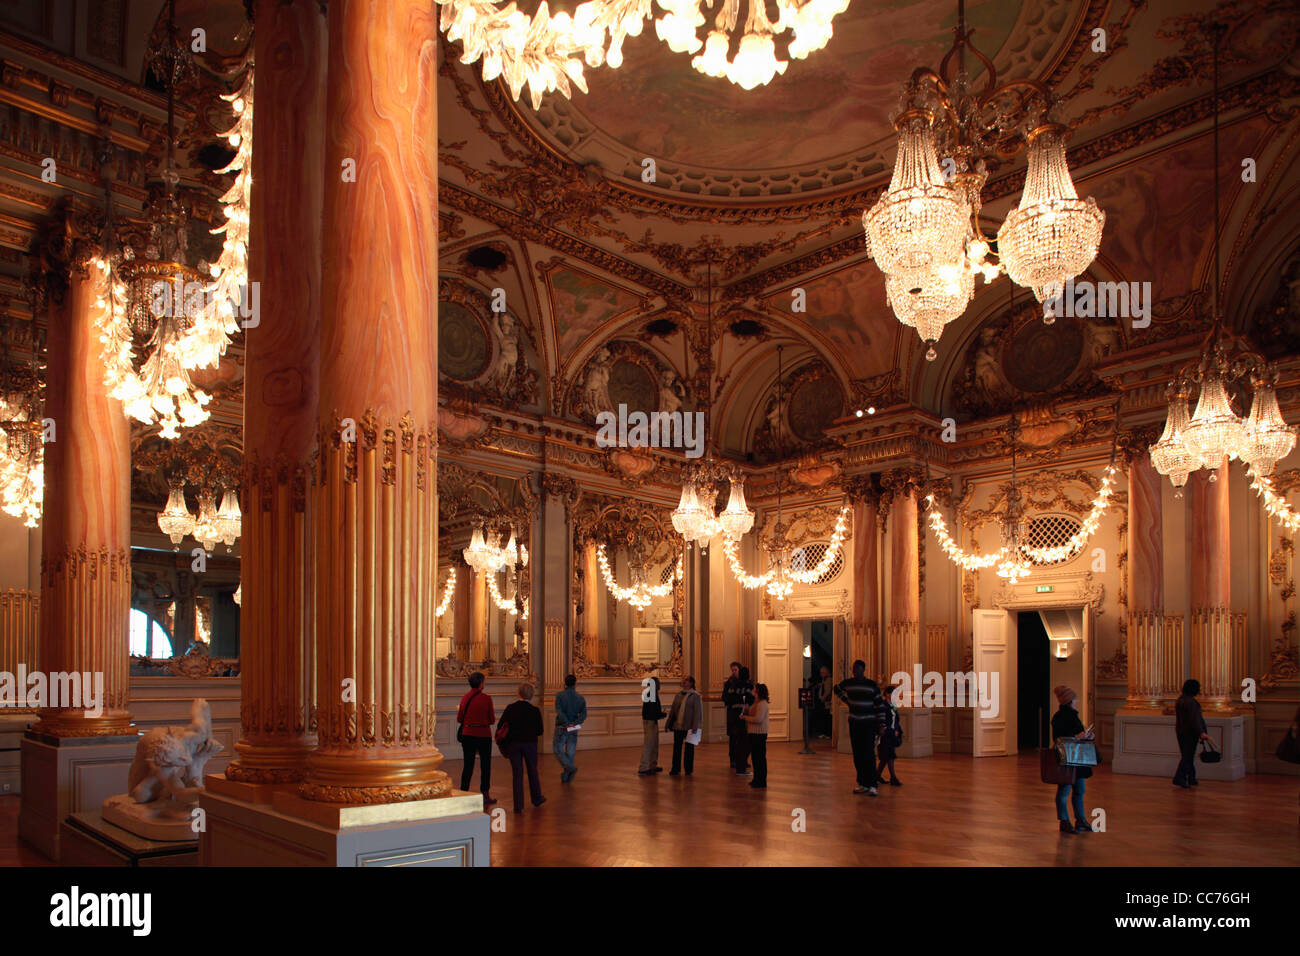 France Paris Salle Des Fetes Festival Hall In The Upper Floor Of Musee Dorsay Orsay Museum